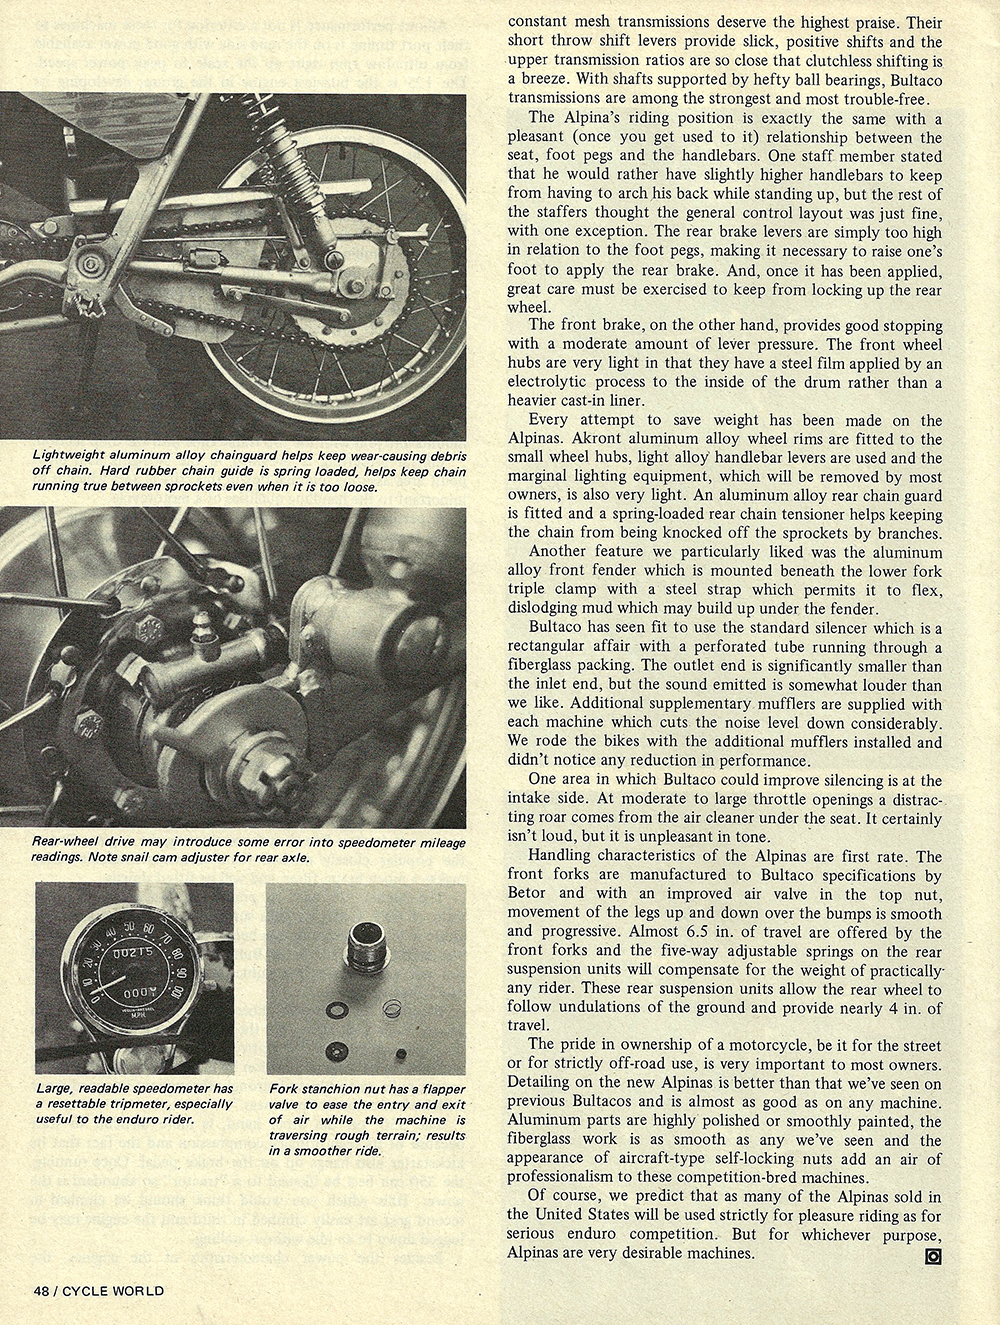 1973 Bultaco Alpina 175 350 road test 05.jpg